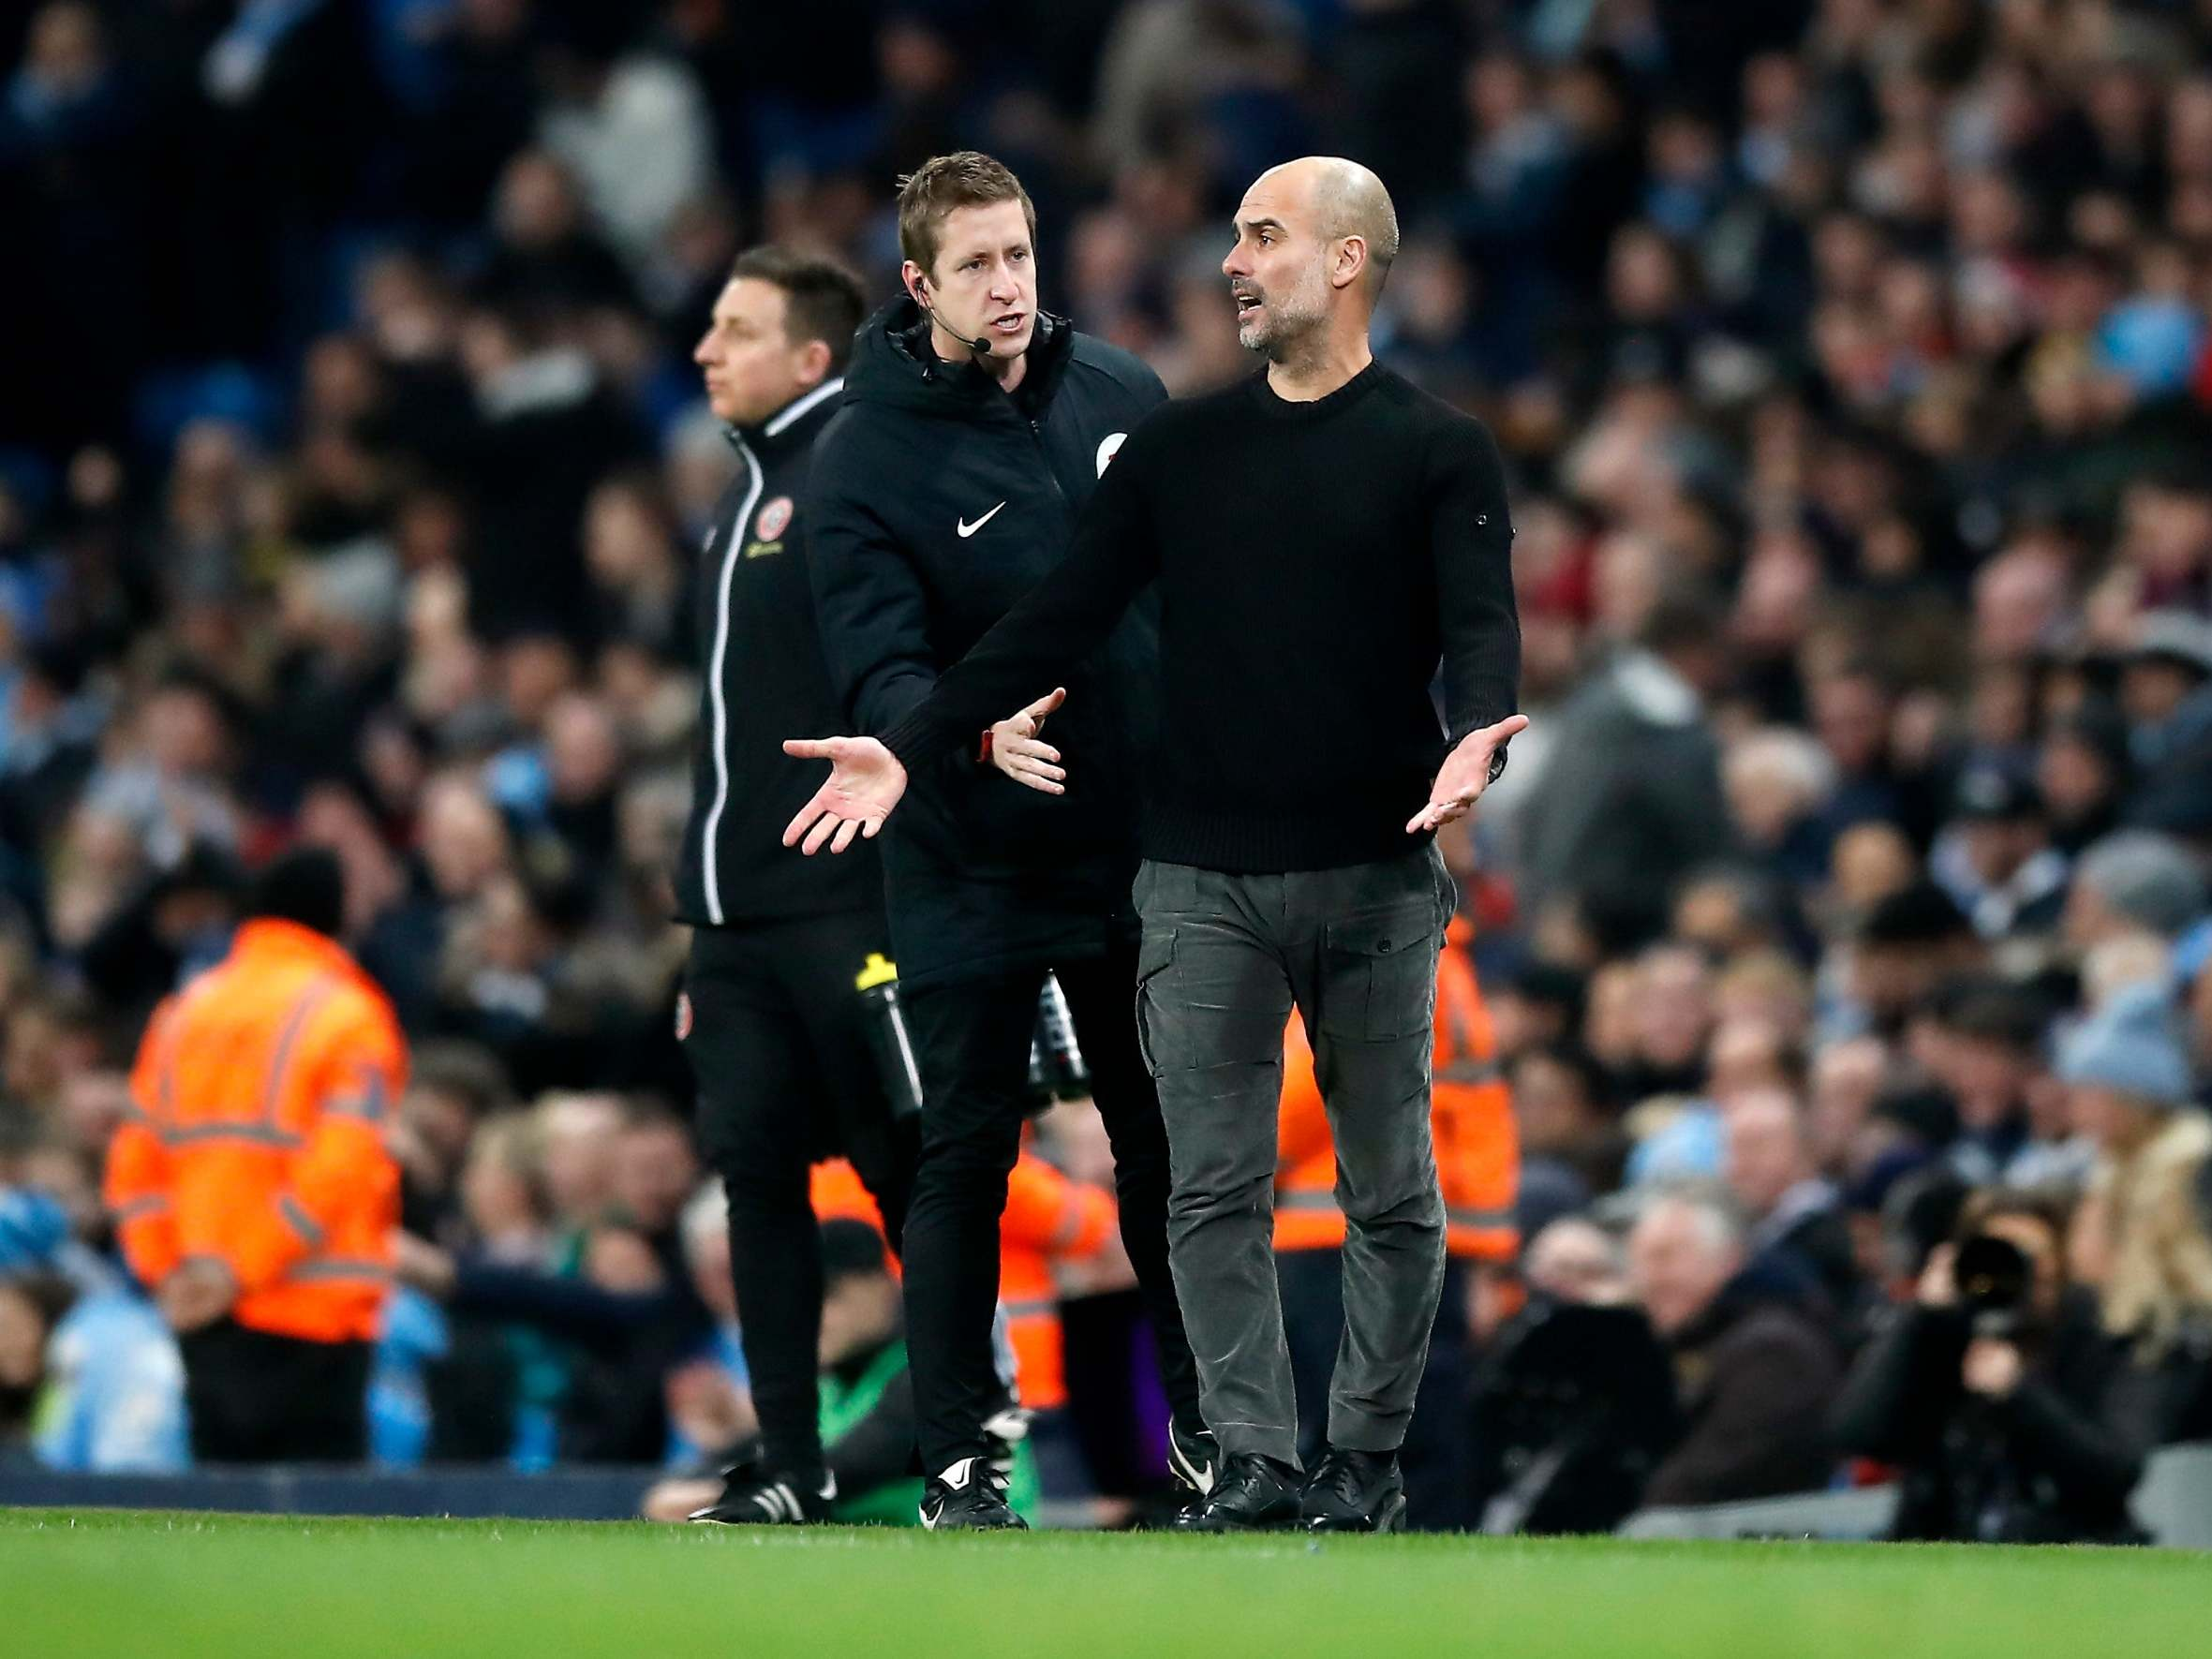 Man City manager Pep Guardiola labels VAR 'complete mess' after beating Sheffield United